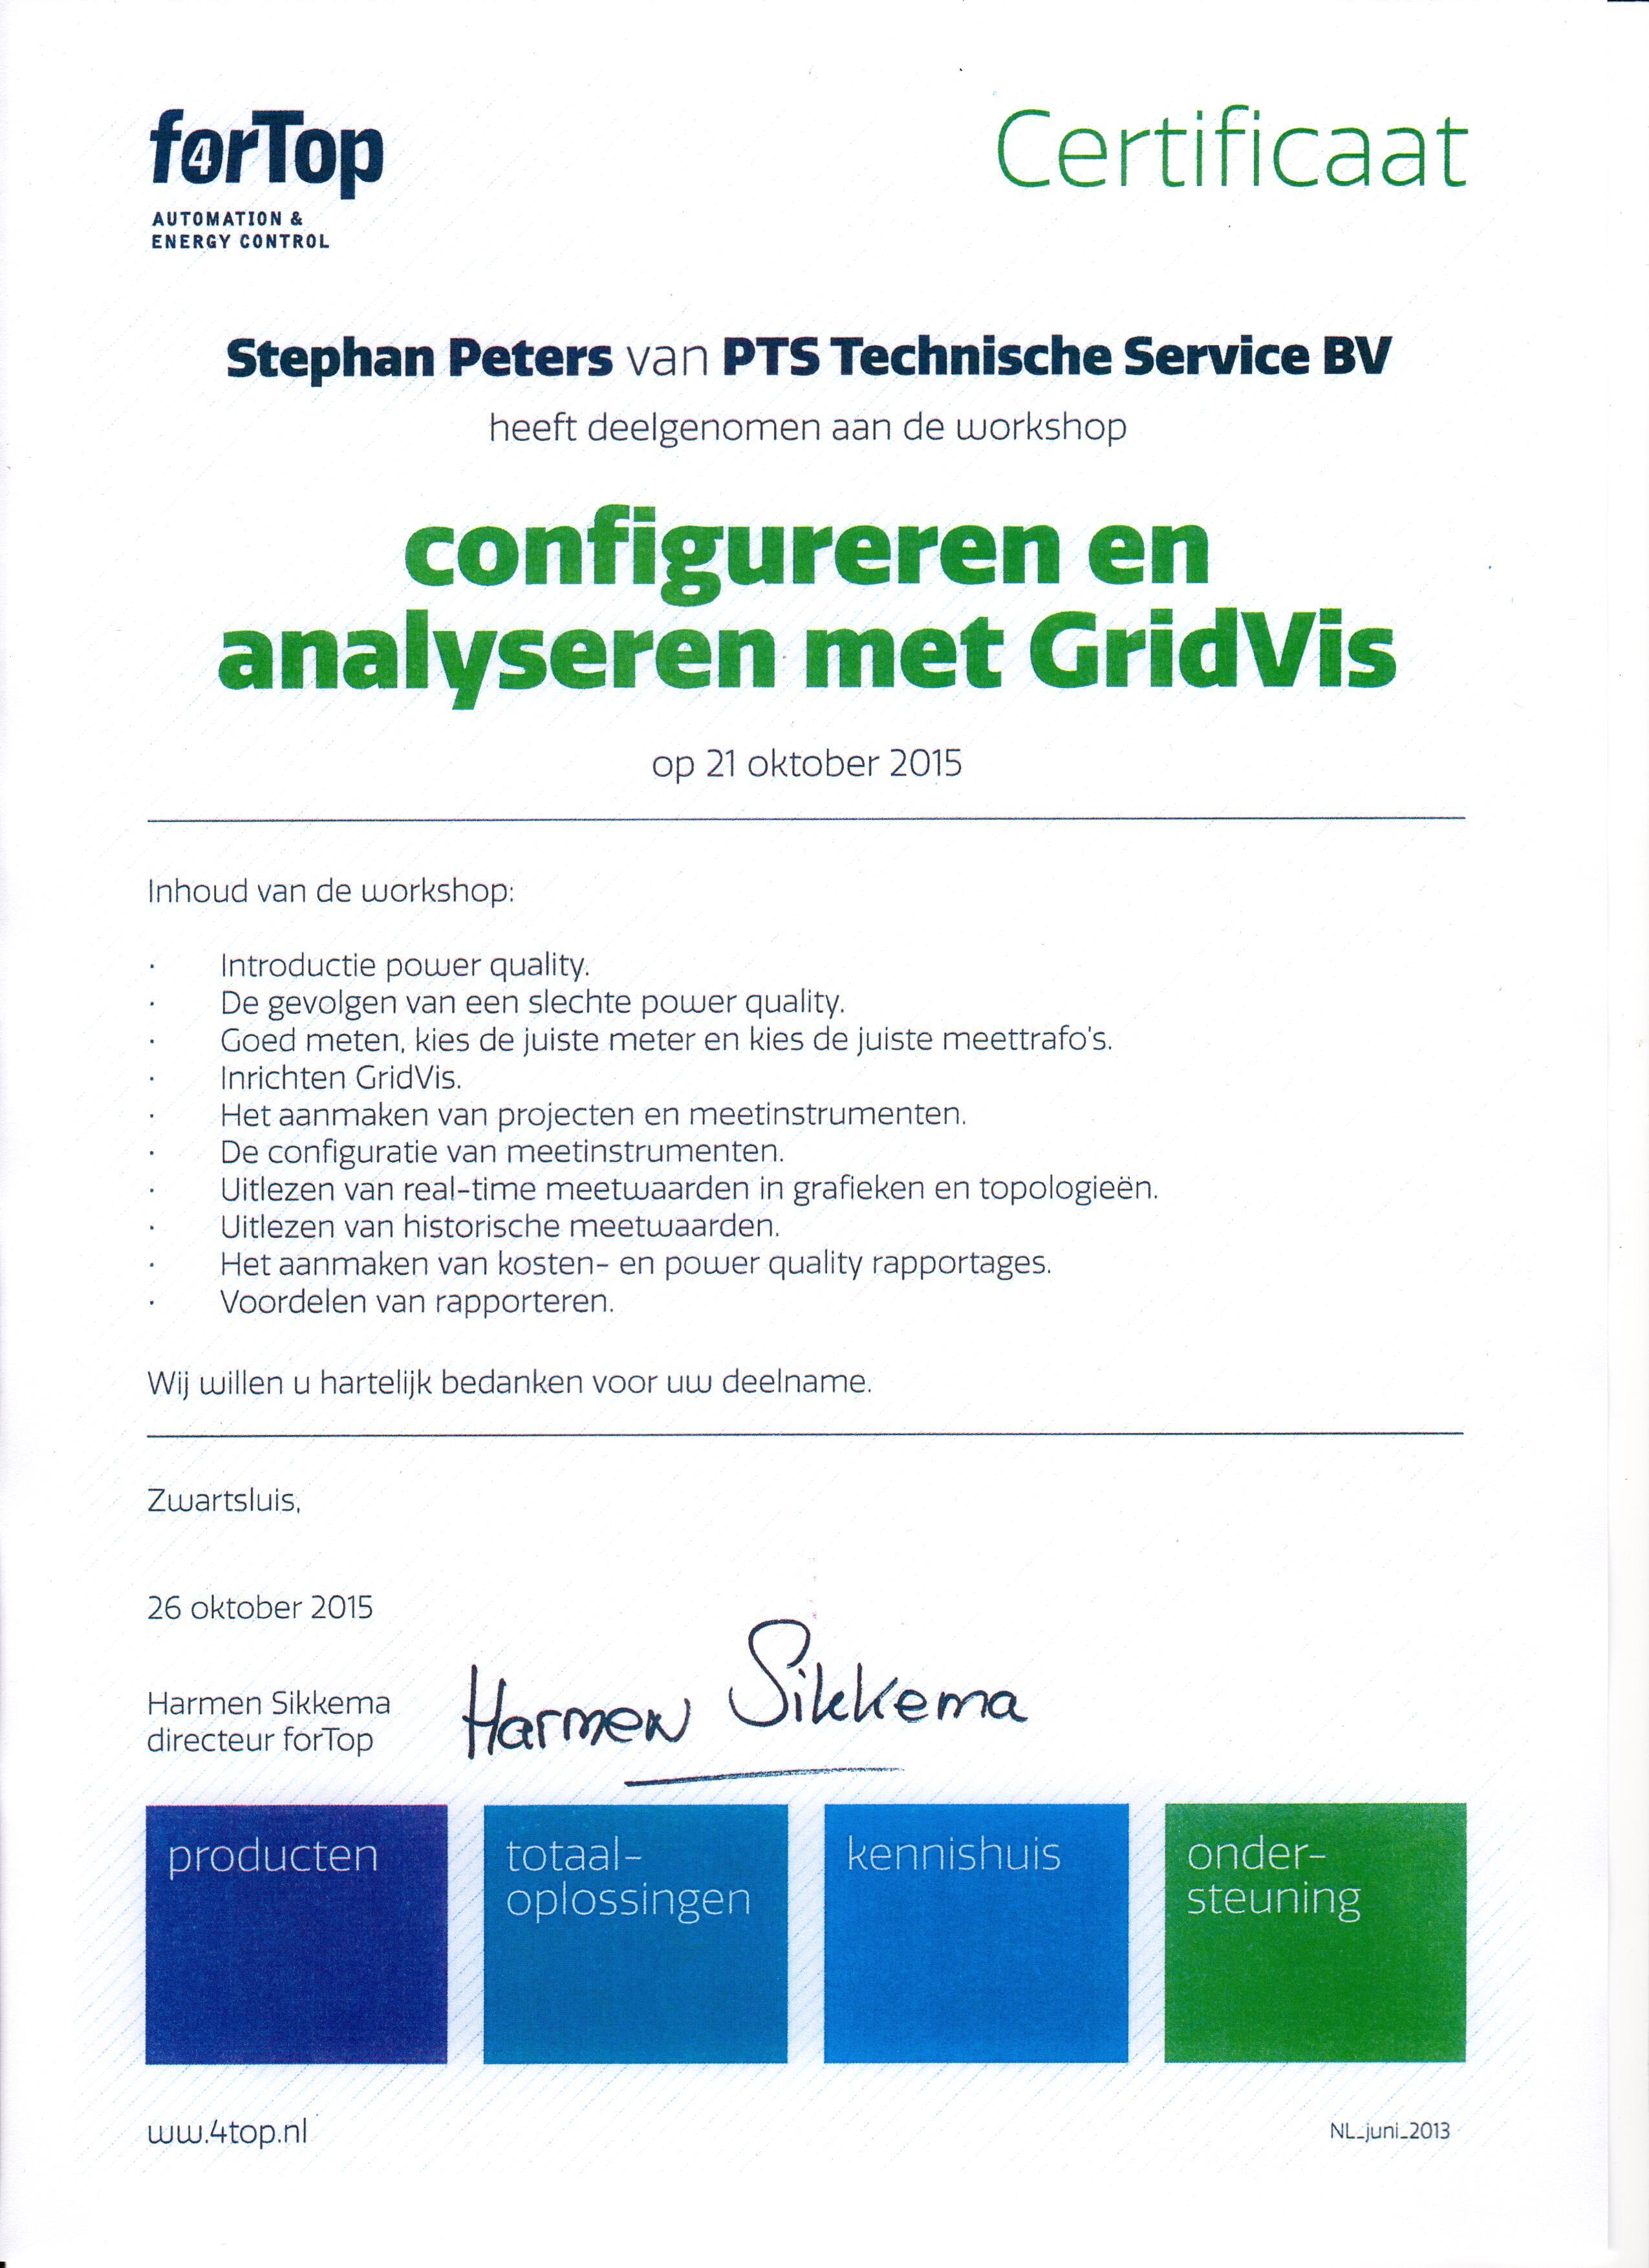 gridvis certificaat stephan peters